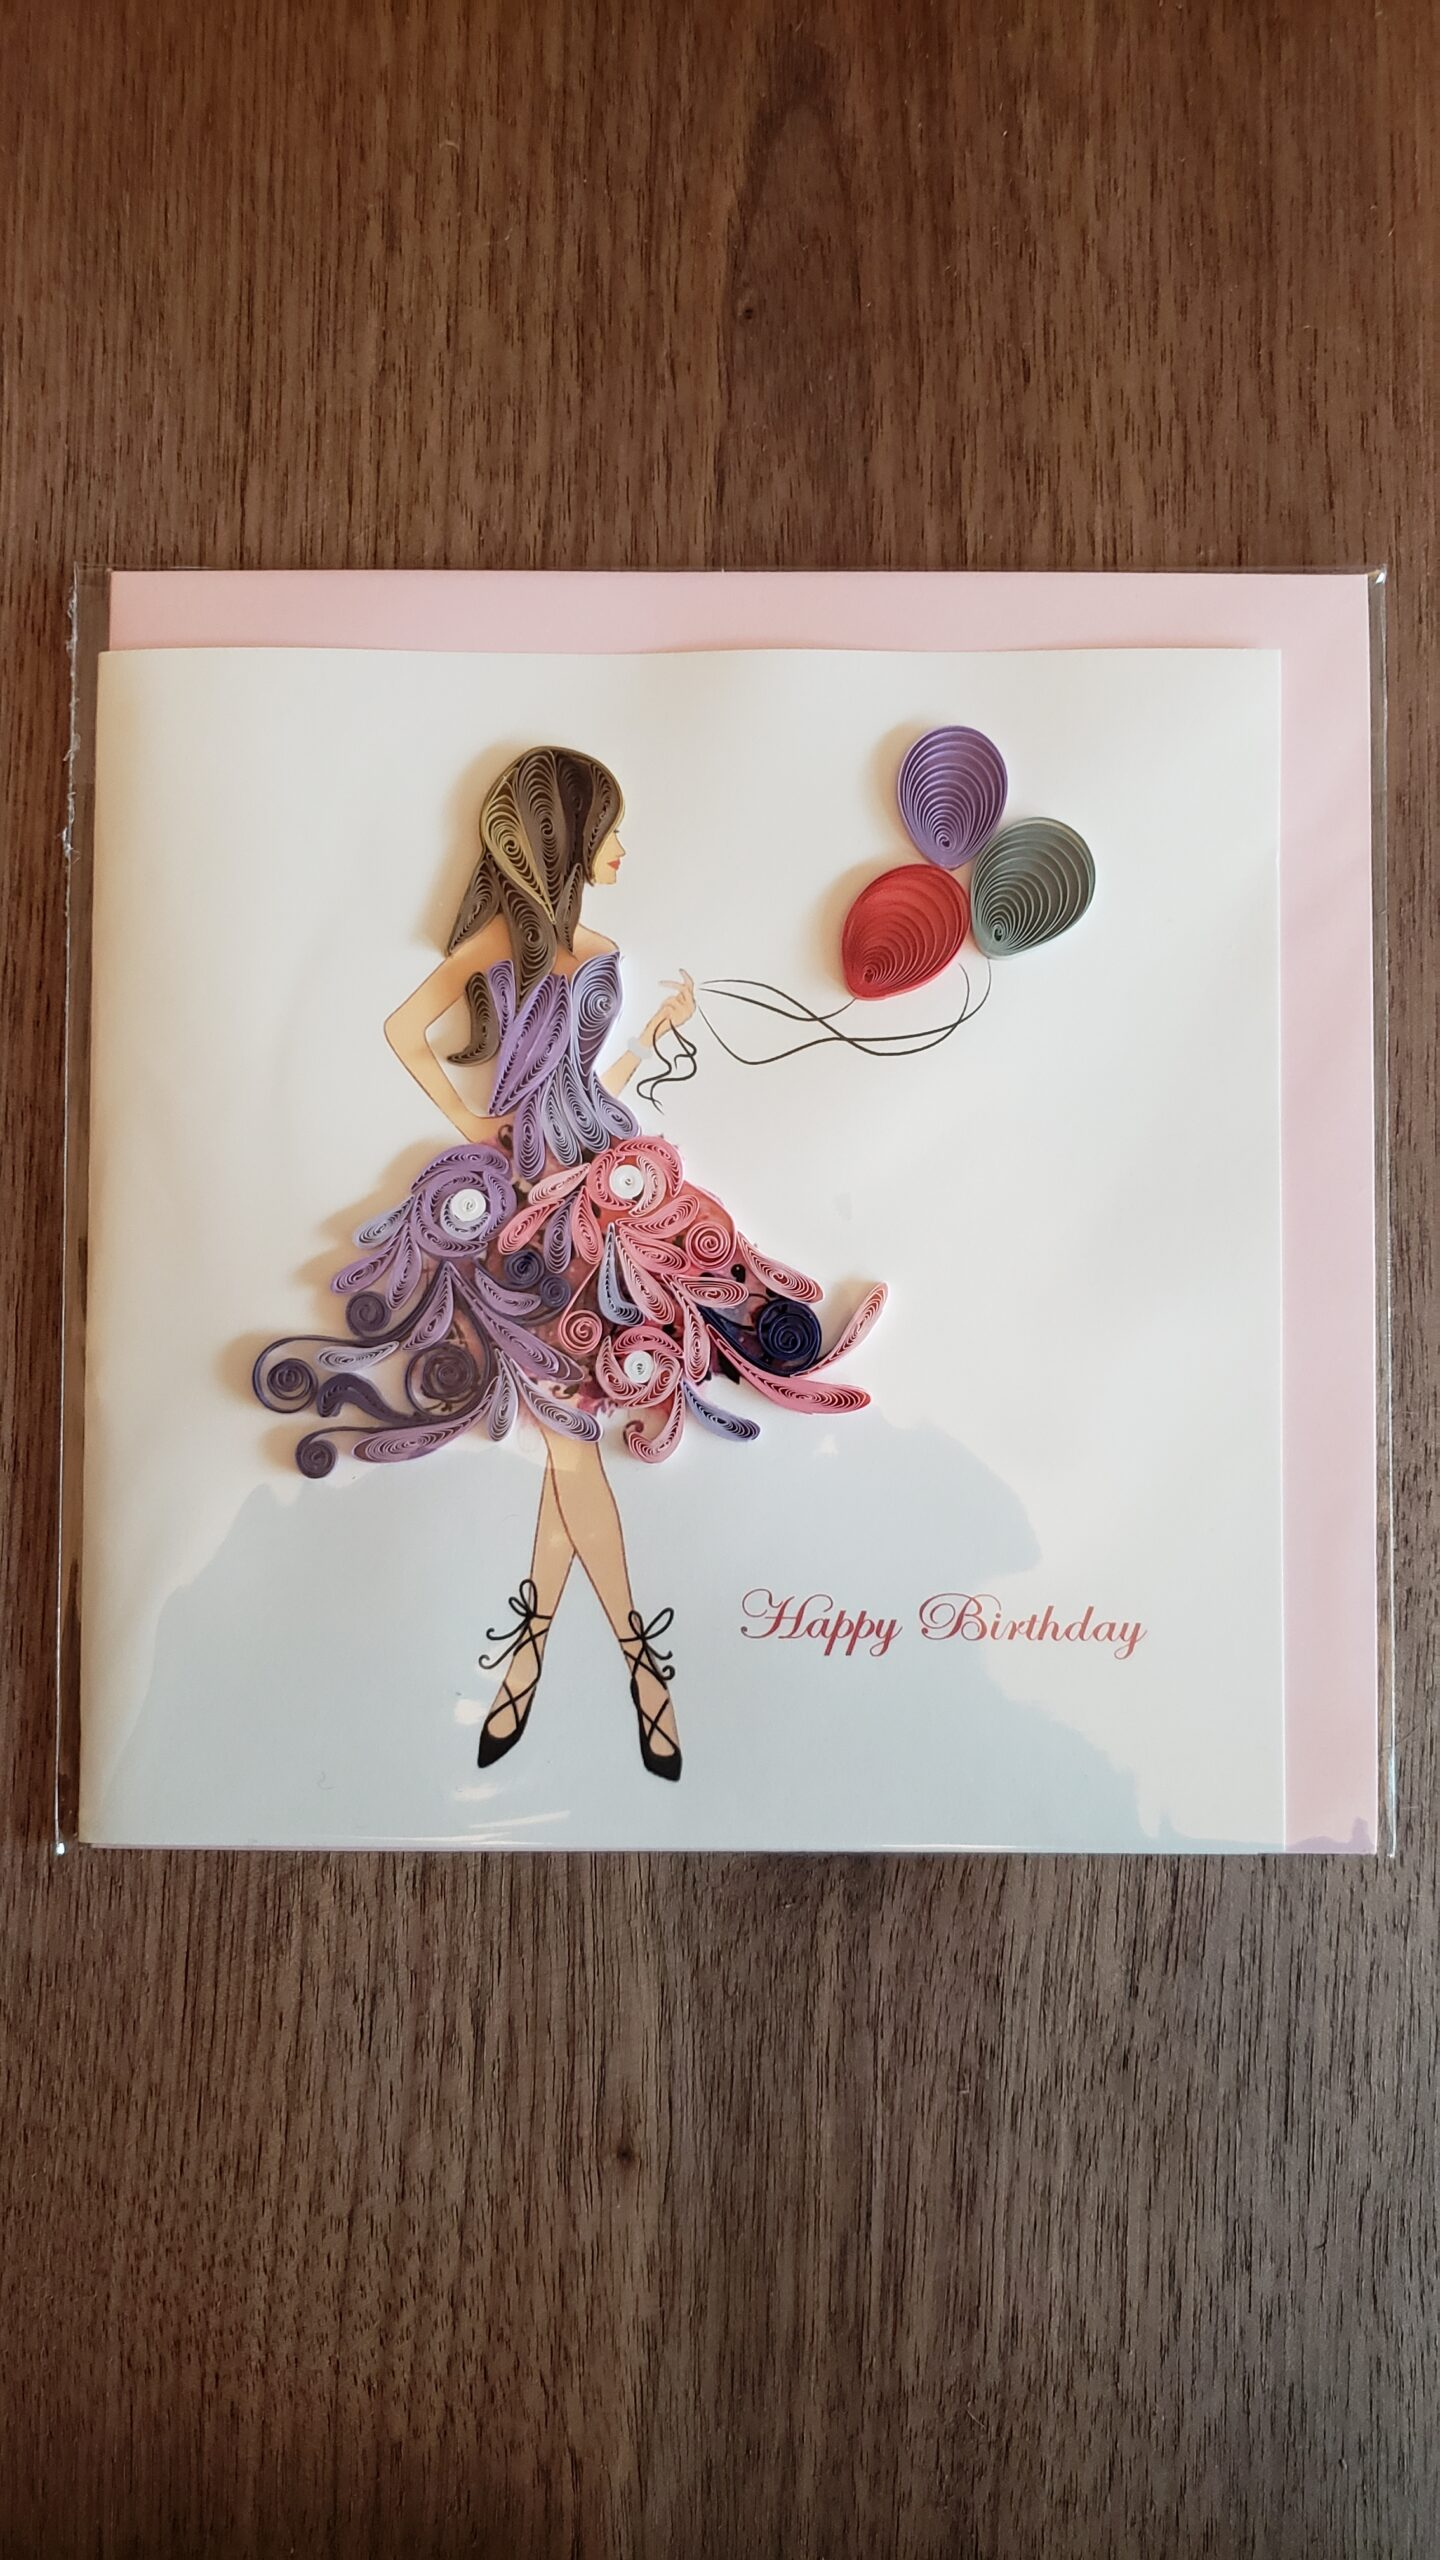 Birthday Girl Card 6 in. x 6 in.